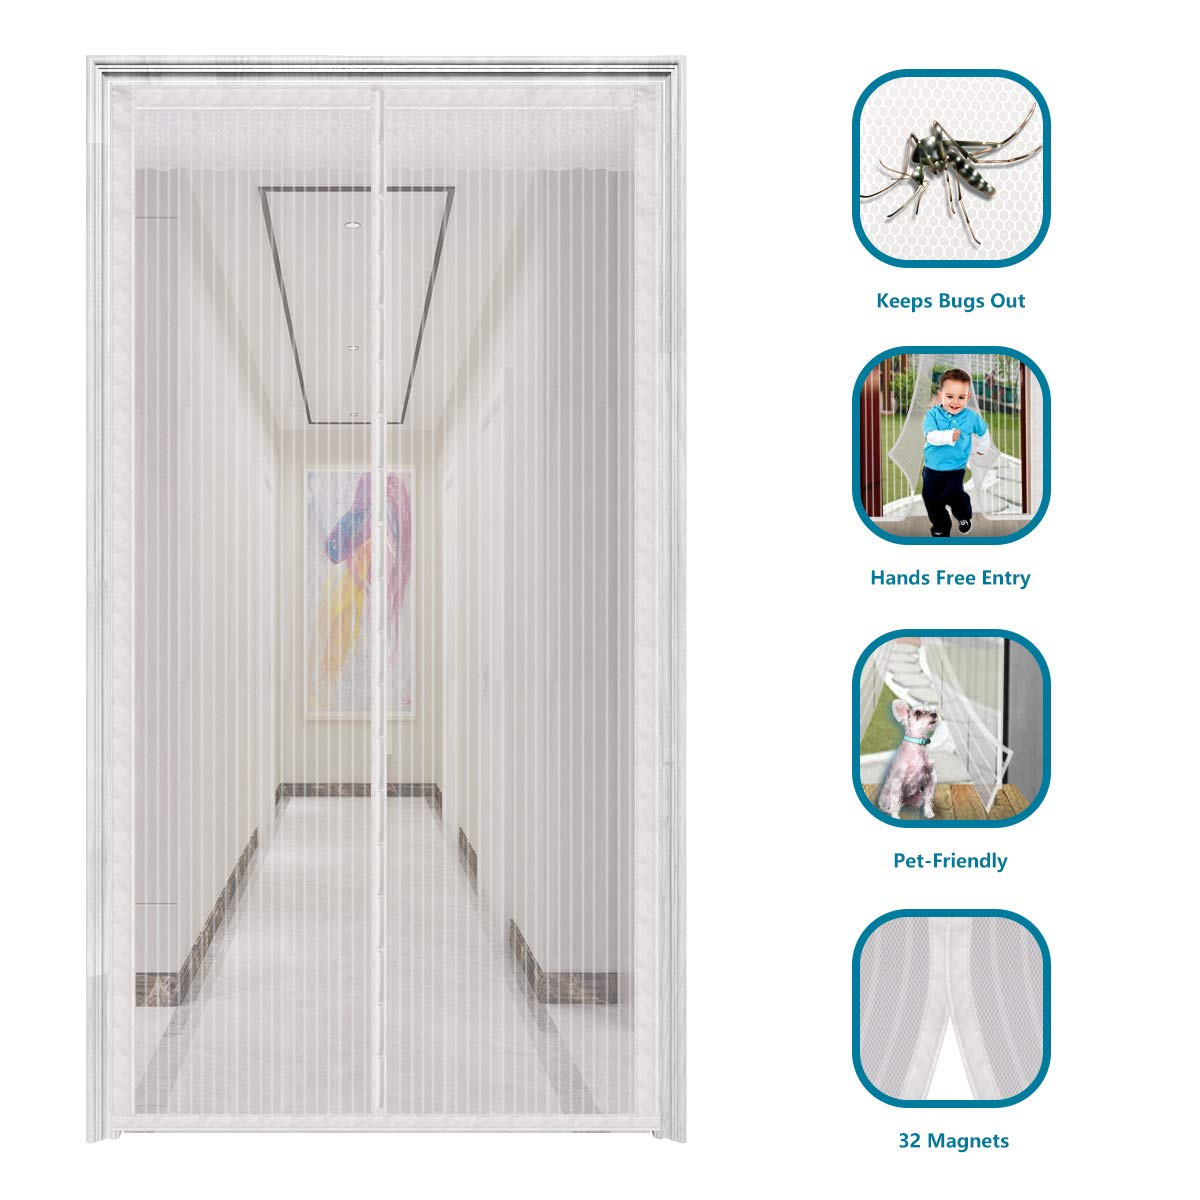 innotree 2019 Upgraded Magnetic Screen Door with 32 Magnets Heavy Duty Mesh Curtain, Fits Doors Up to 39''x82'', Dogs Pets Friendly Door Screen, White